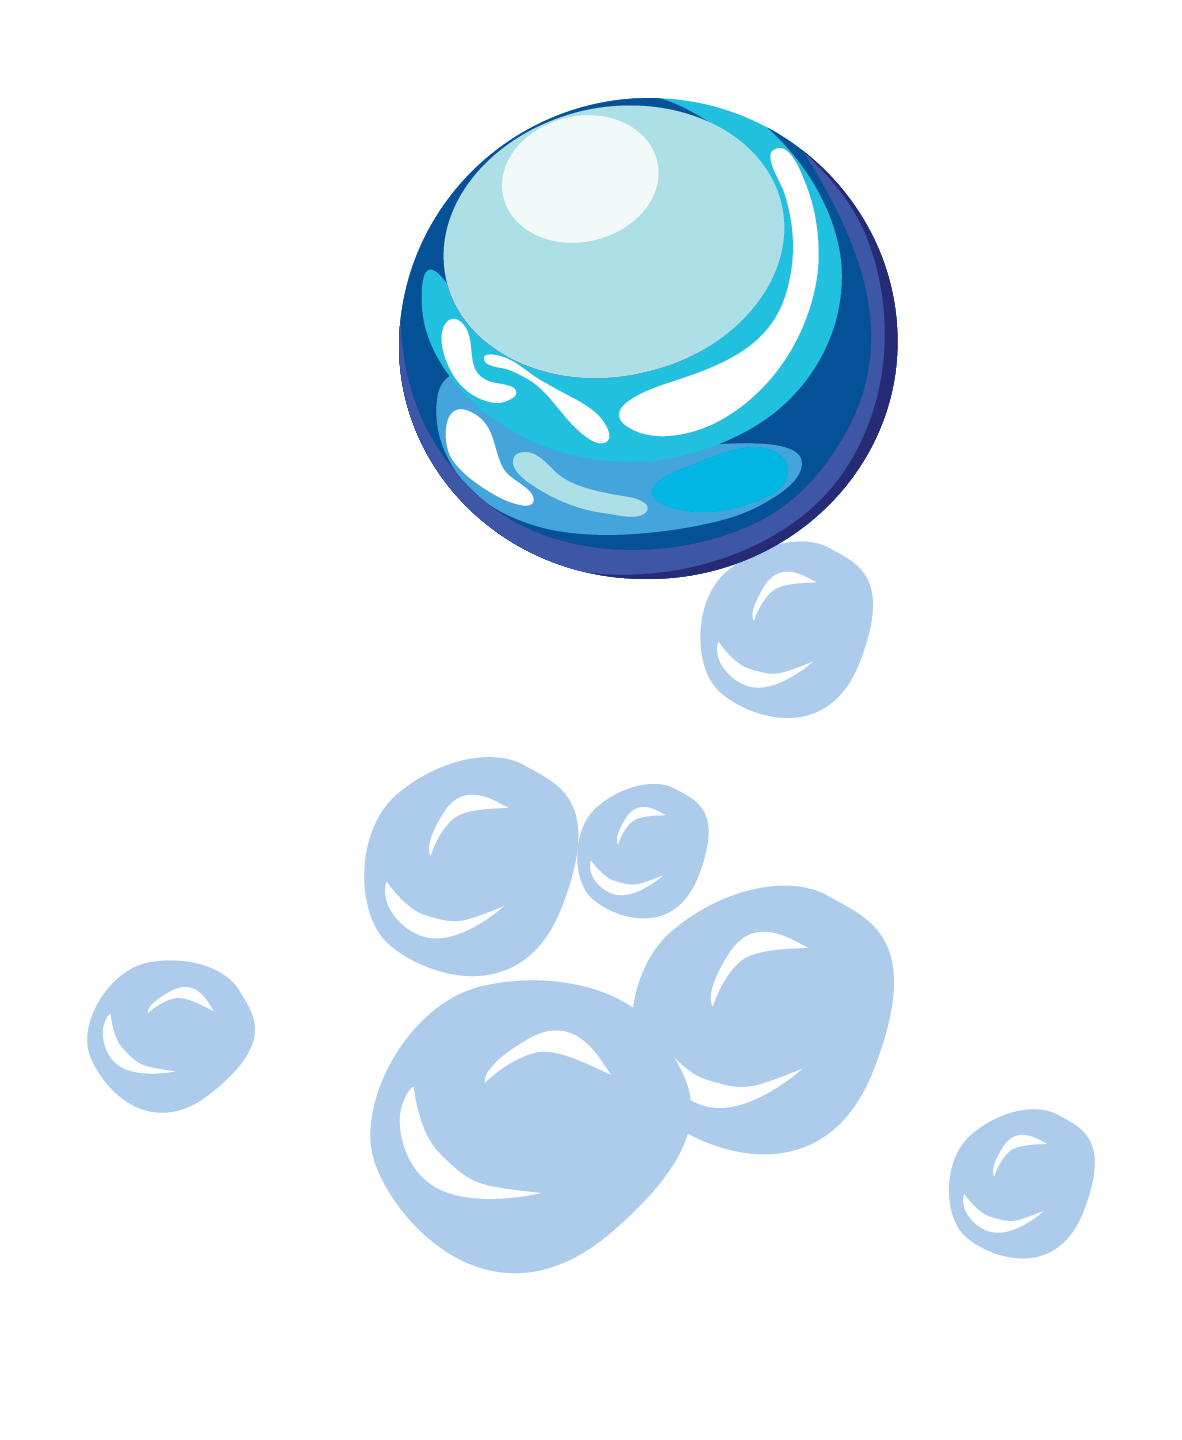 bubble_graphics-04.png